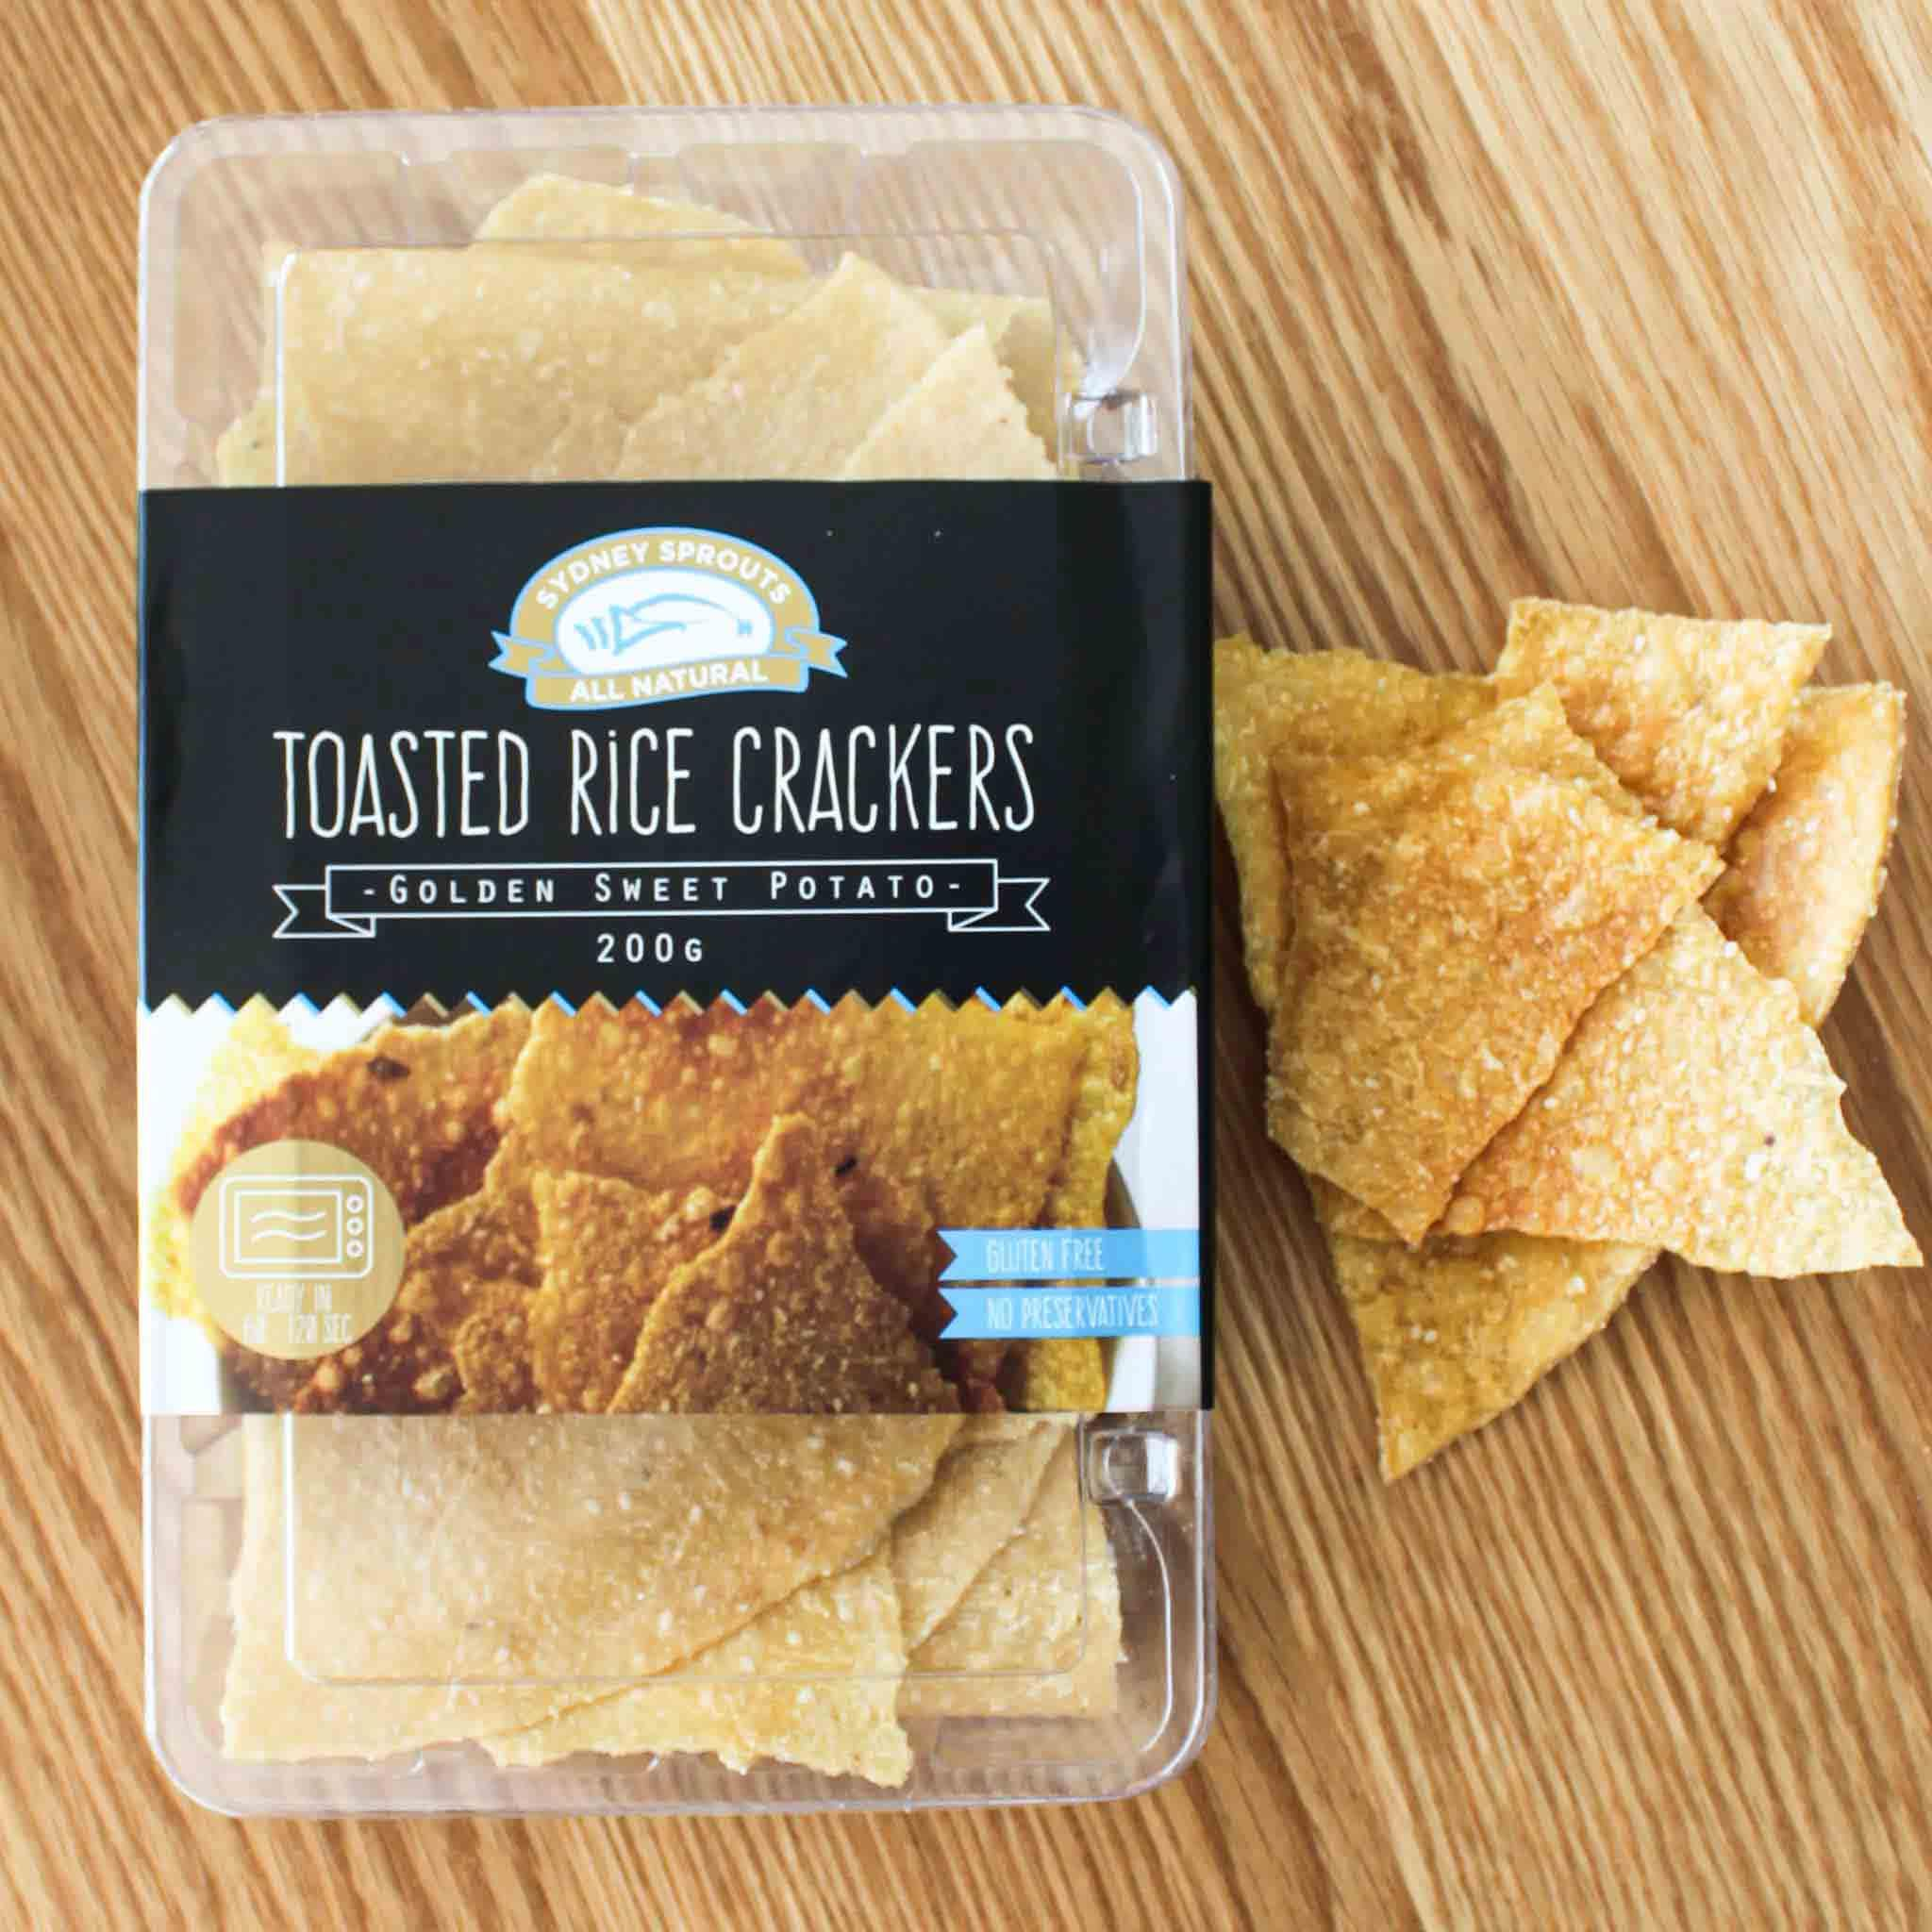 Toasted Rice Crackers - Golden Sweet Potato